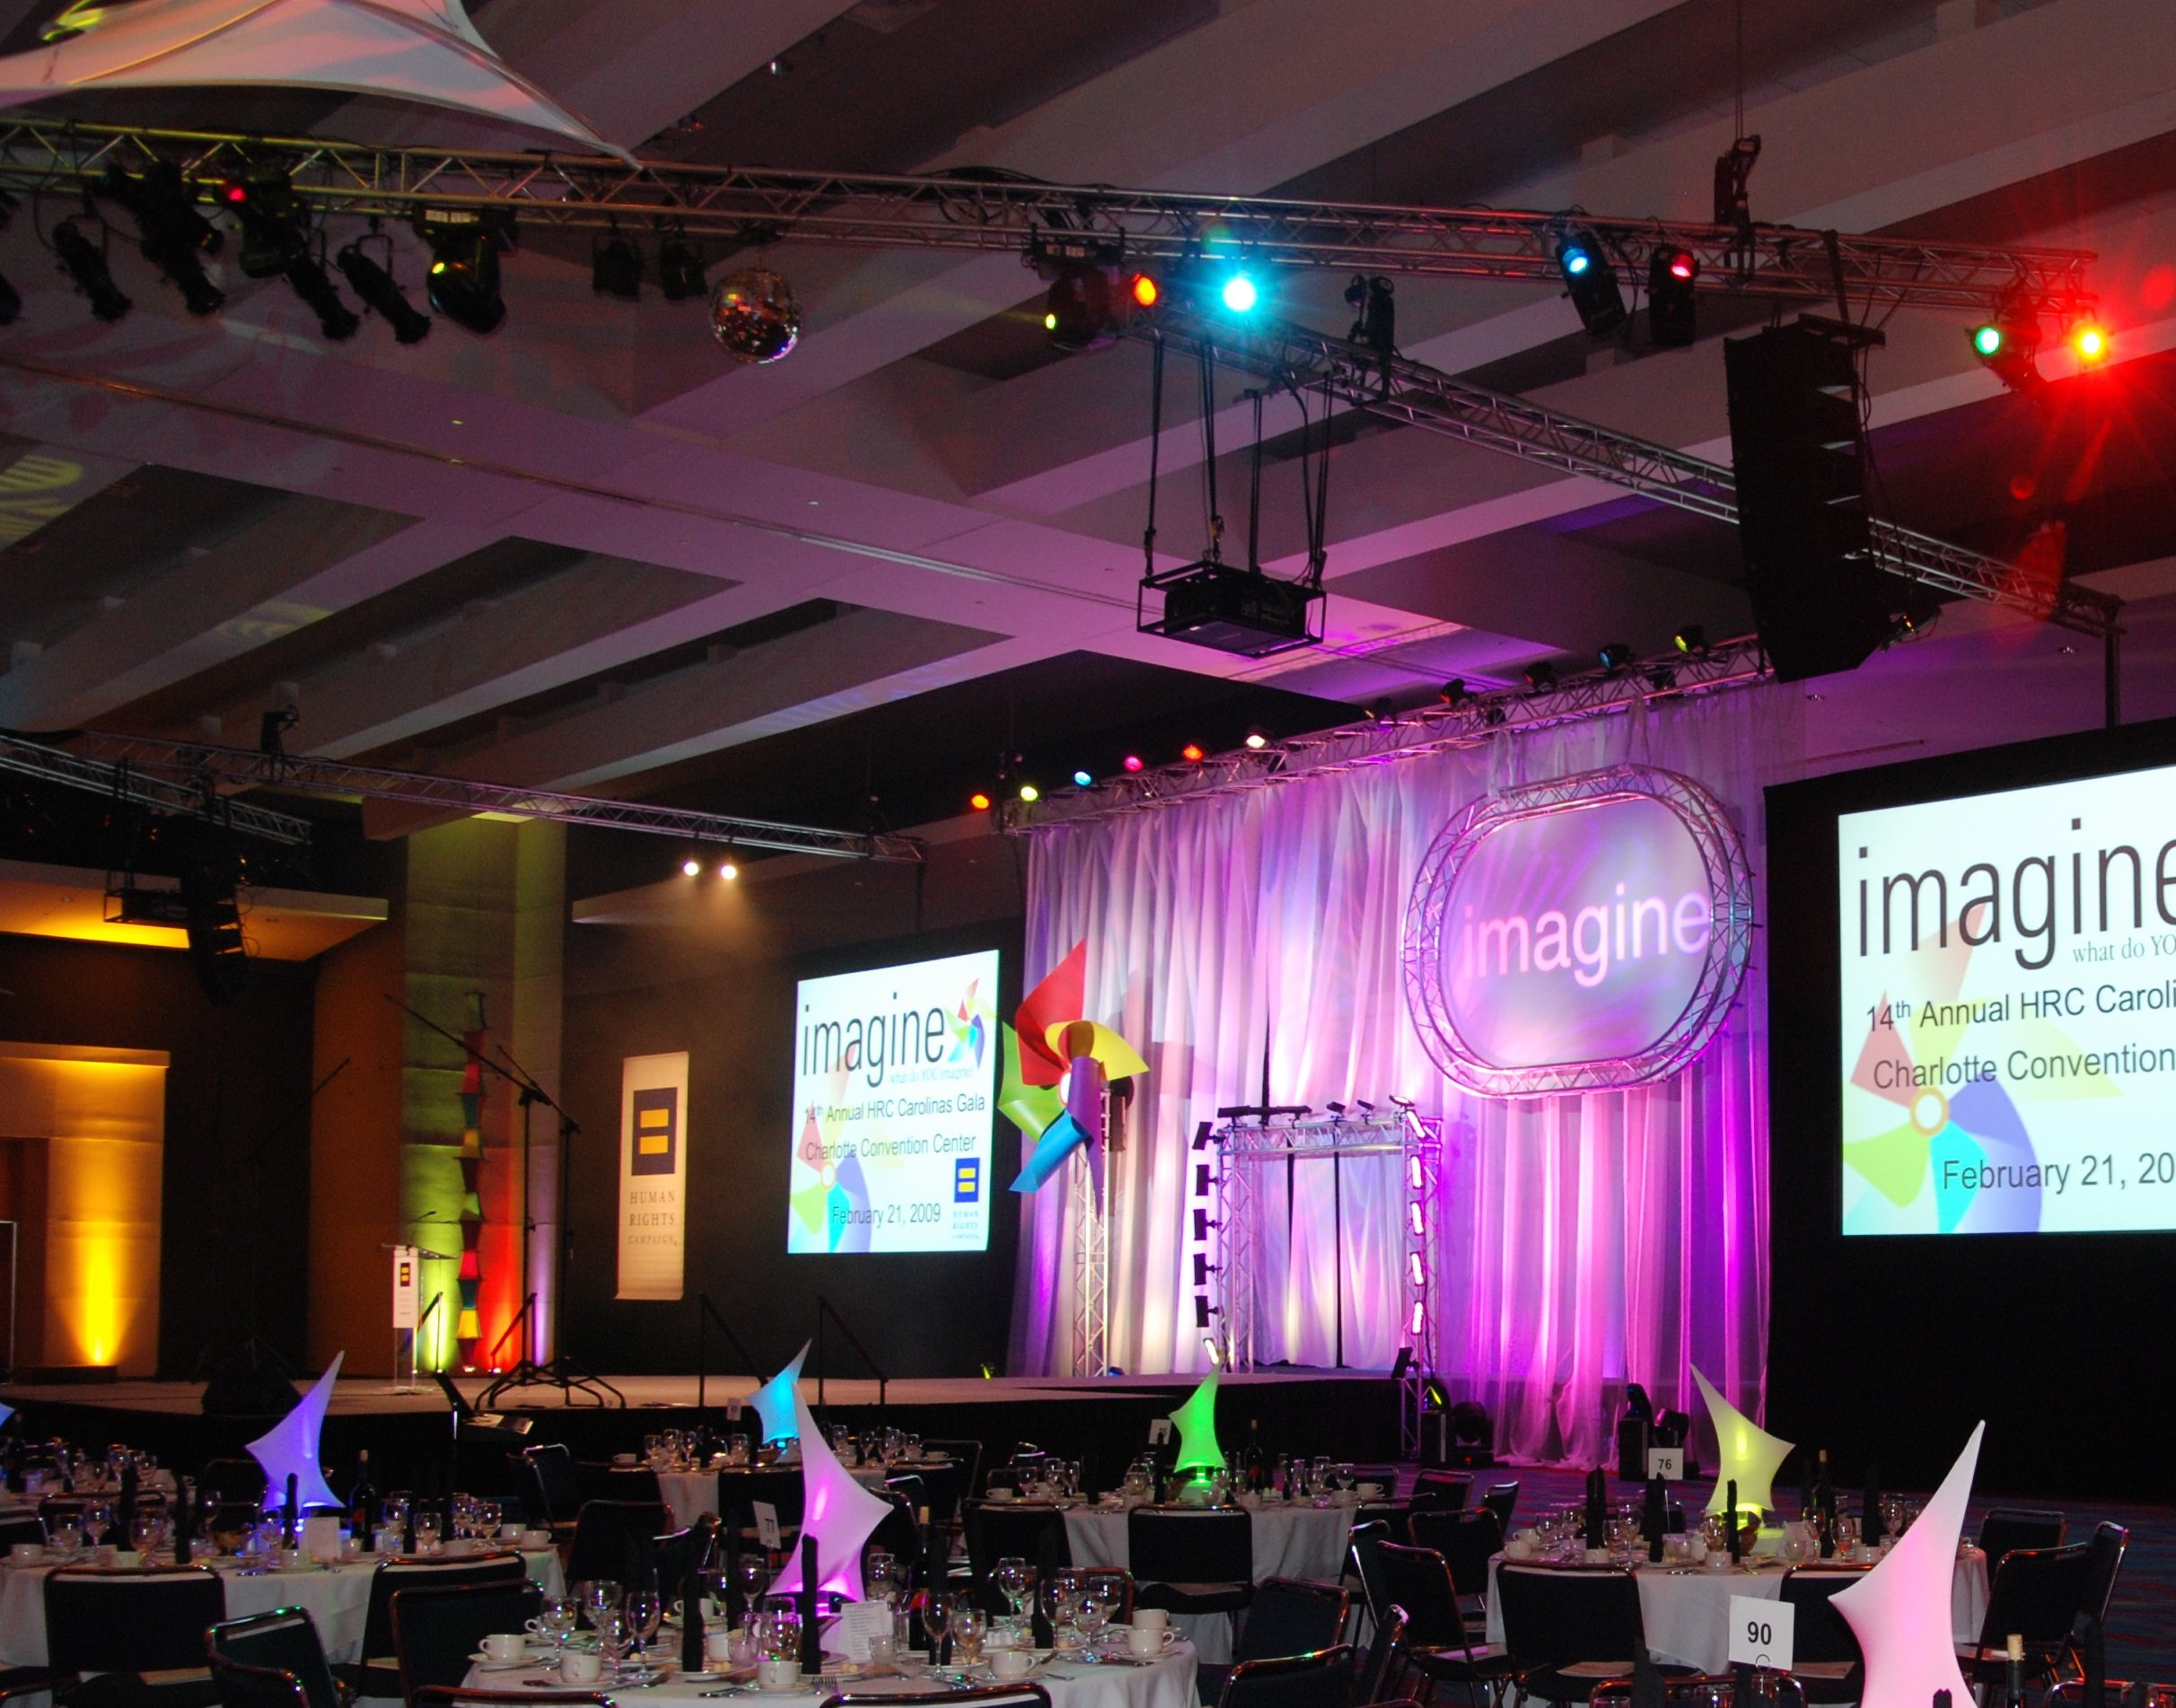 Convention Center Ballroom Transformed for Banquet & Concert